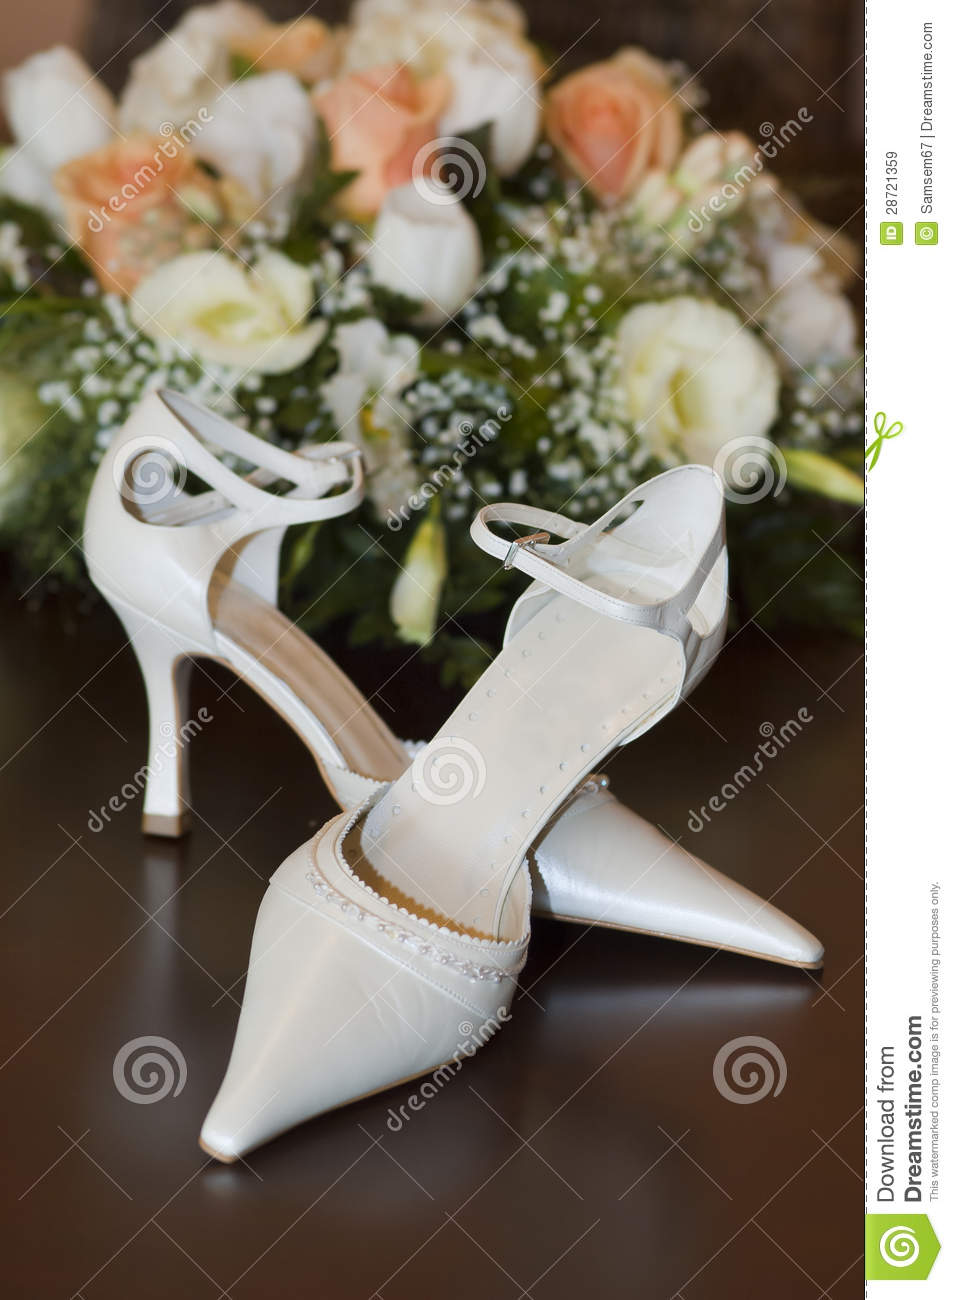 More similar stock images of ` Brides shoes and flowers